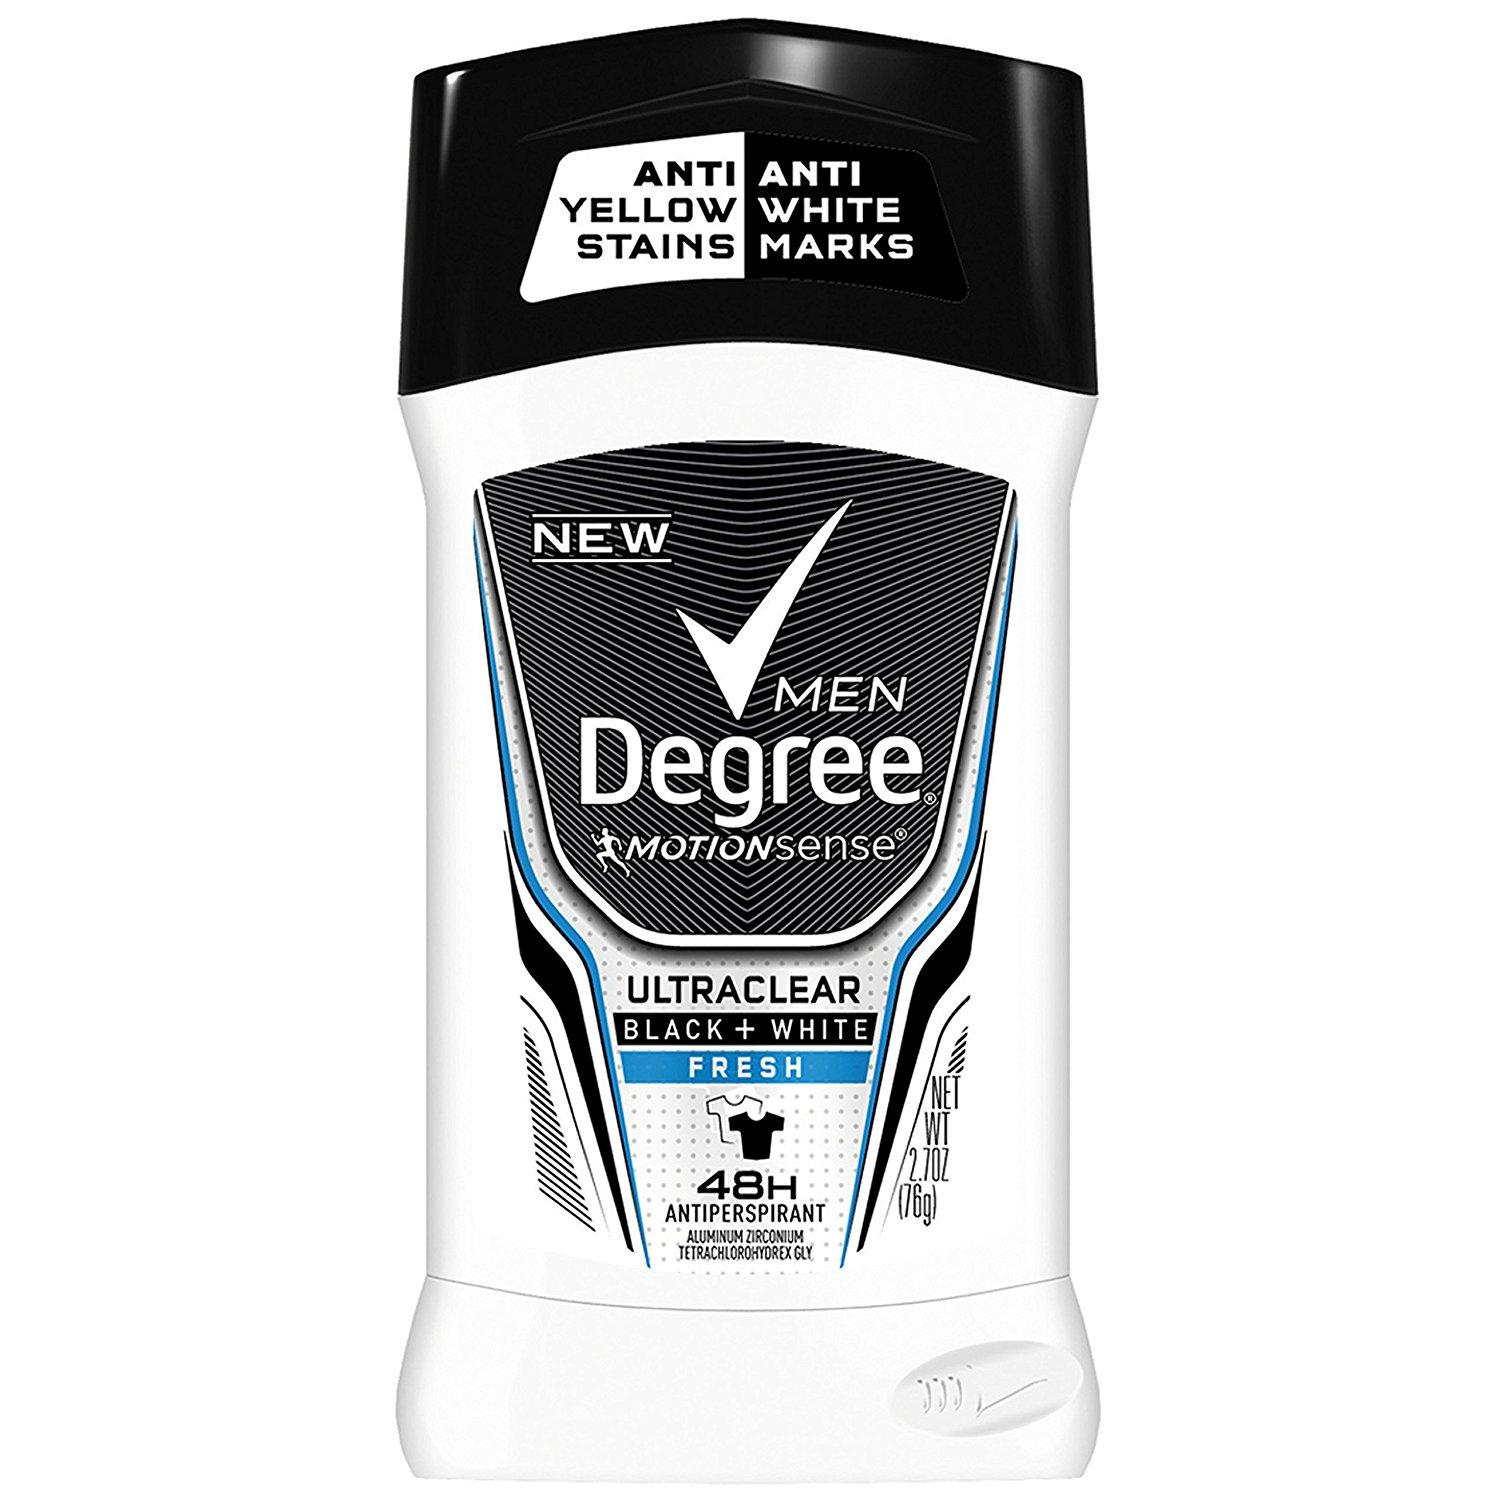 Degree Men MotionSense Sport Defense Dry Spray Antiperspirant g, goes on instantly dry for a cleaner feel. Provides powerful odour and sweat protection.